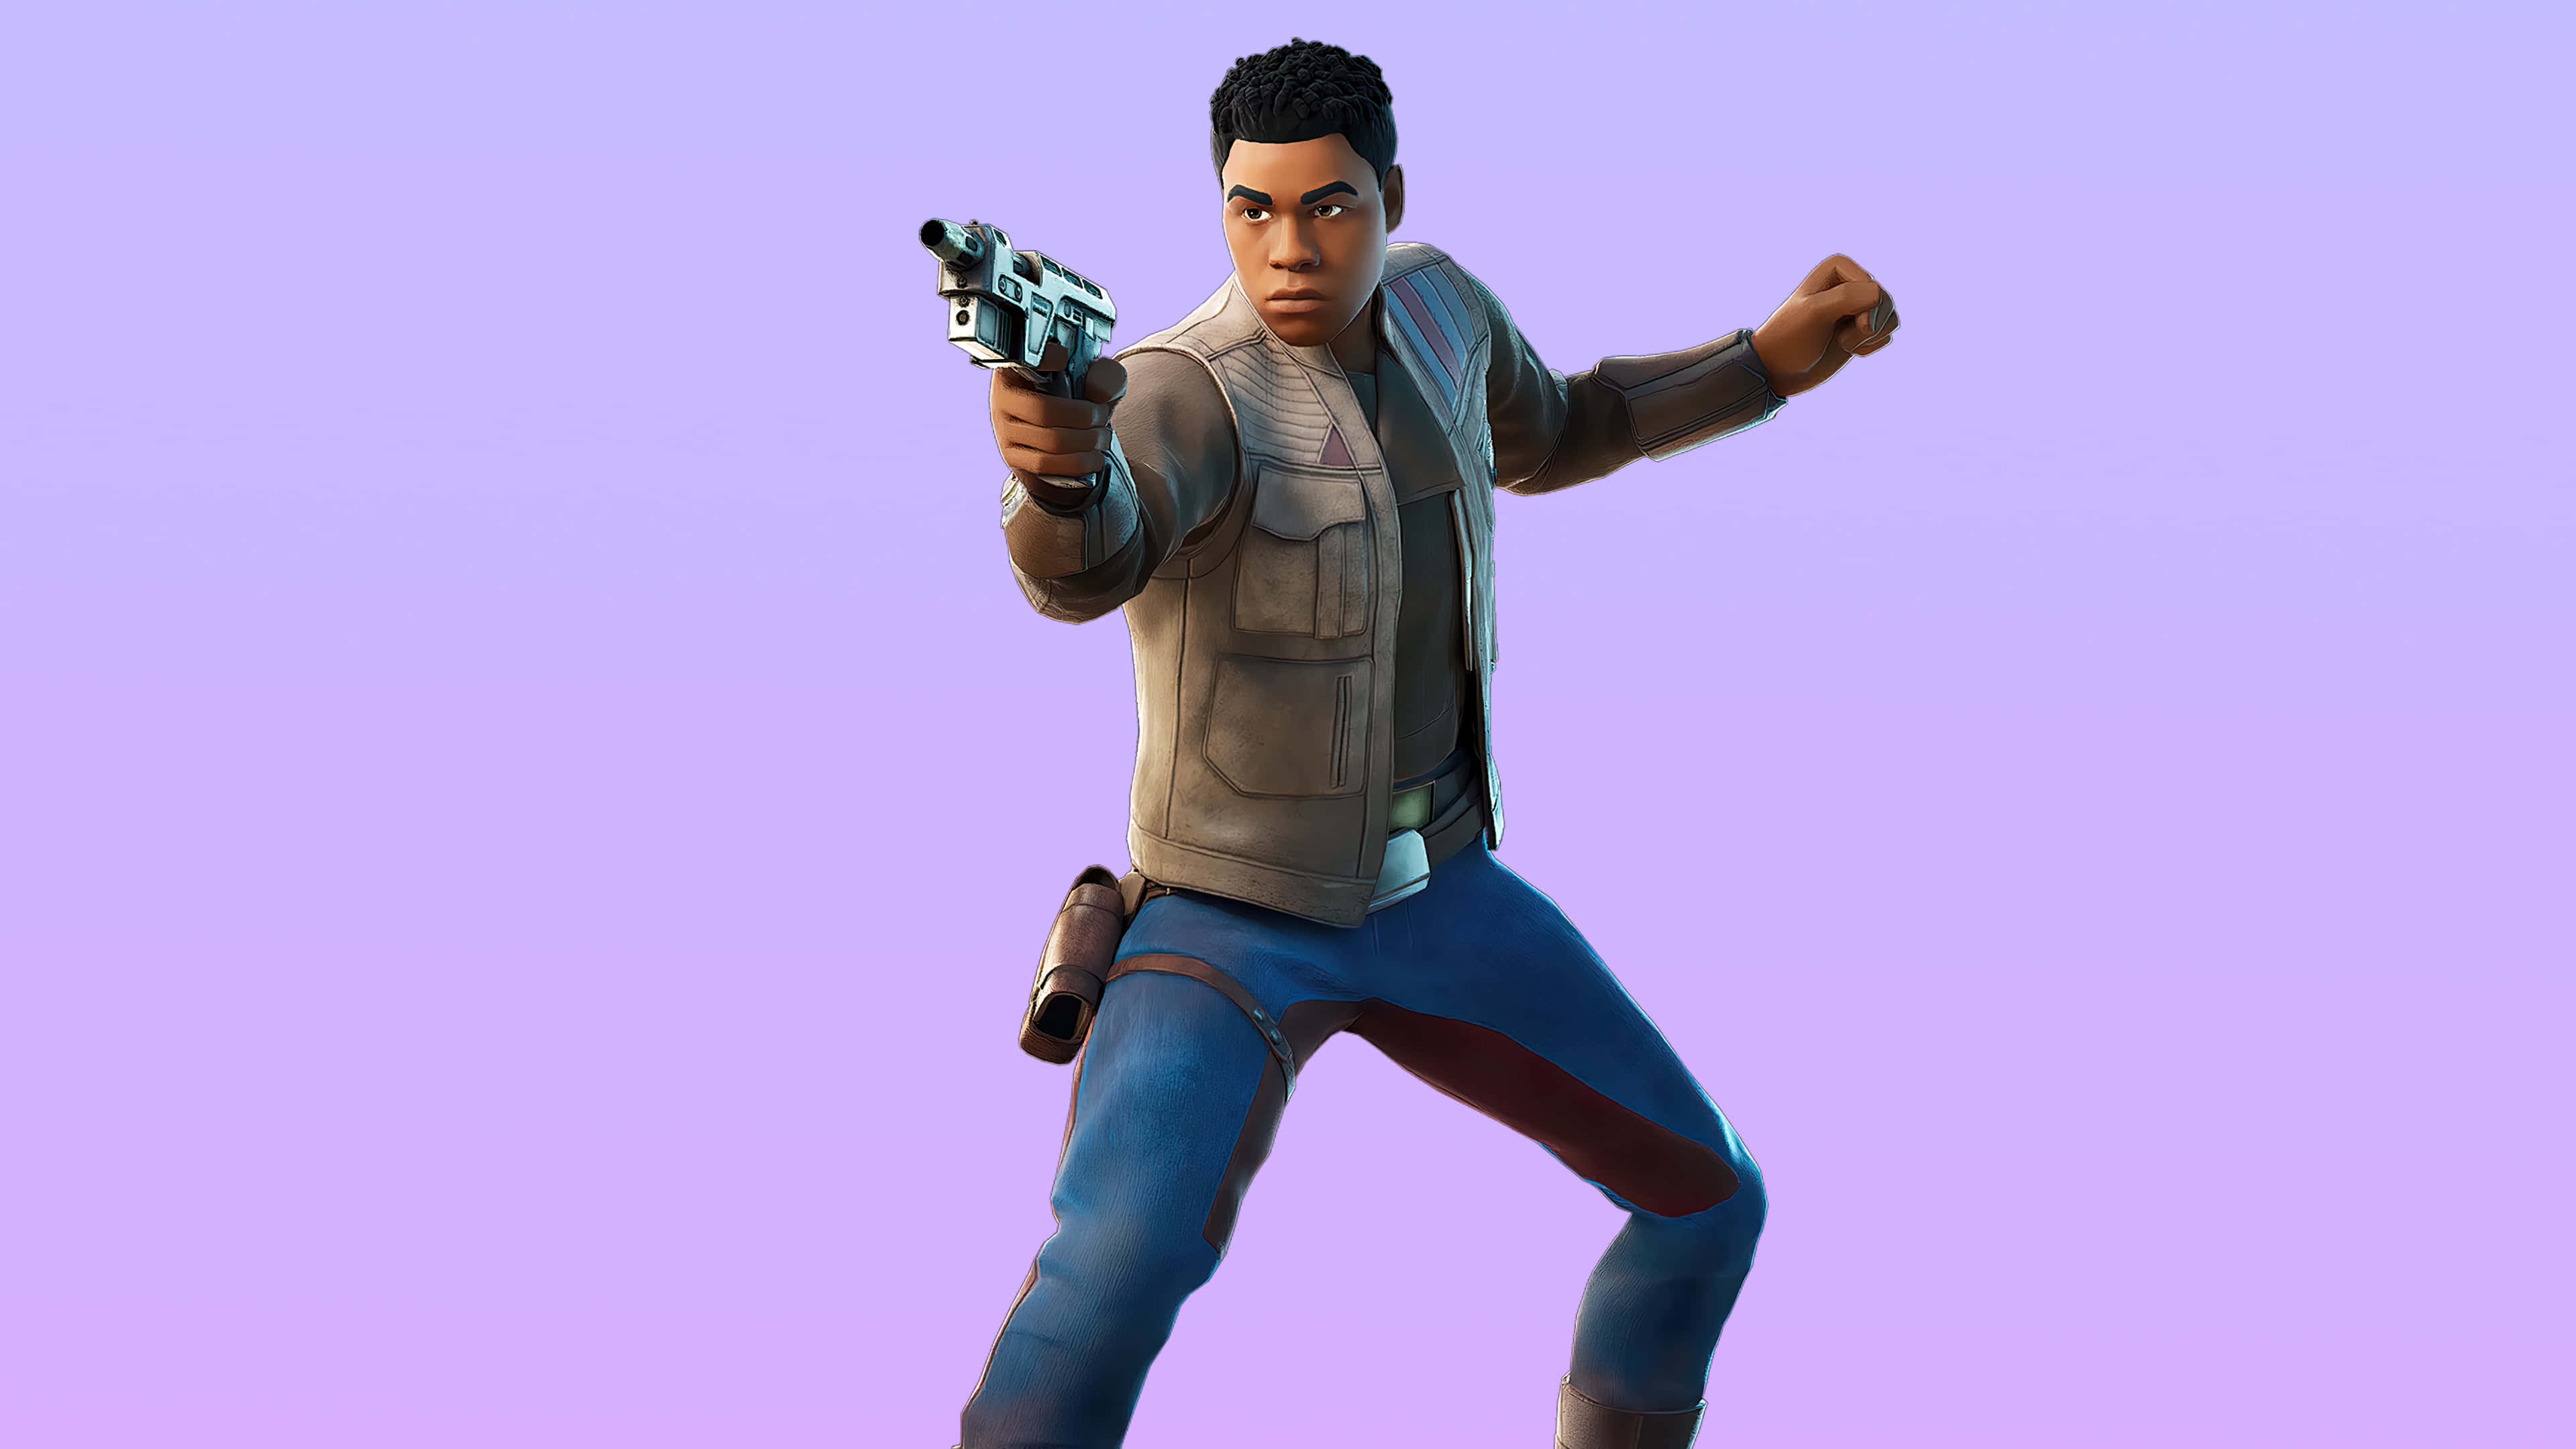 fortnite the new trilogy set finn skin outfit uhd 4k wallpaper